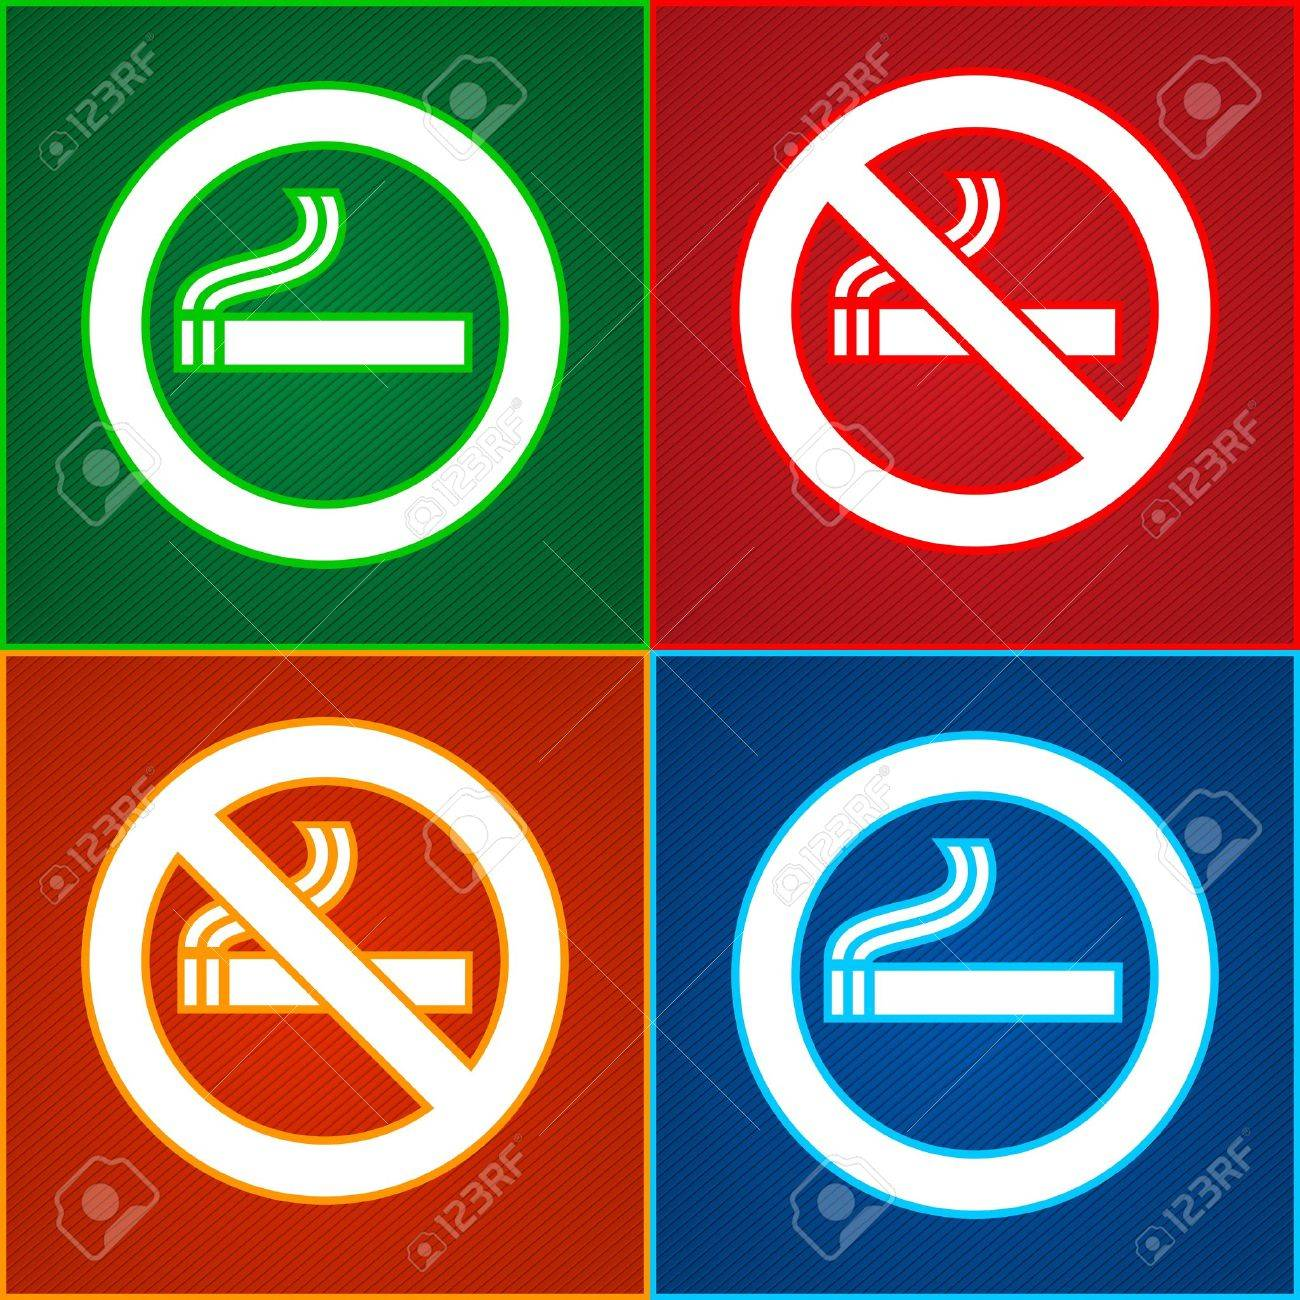 Stickers set - No smoking area labels Stock Vector - 14038003